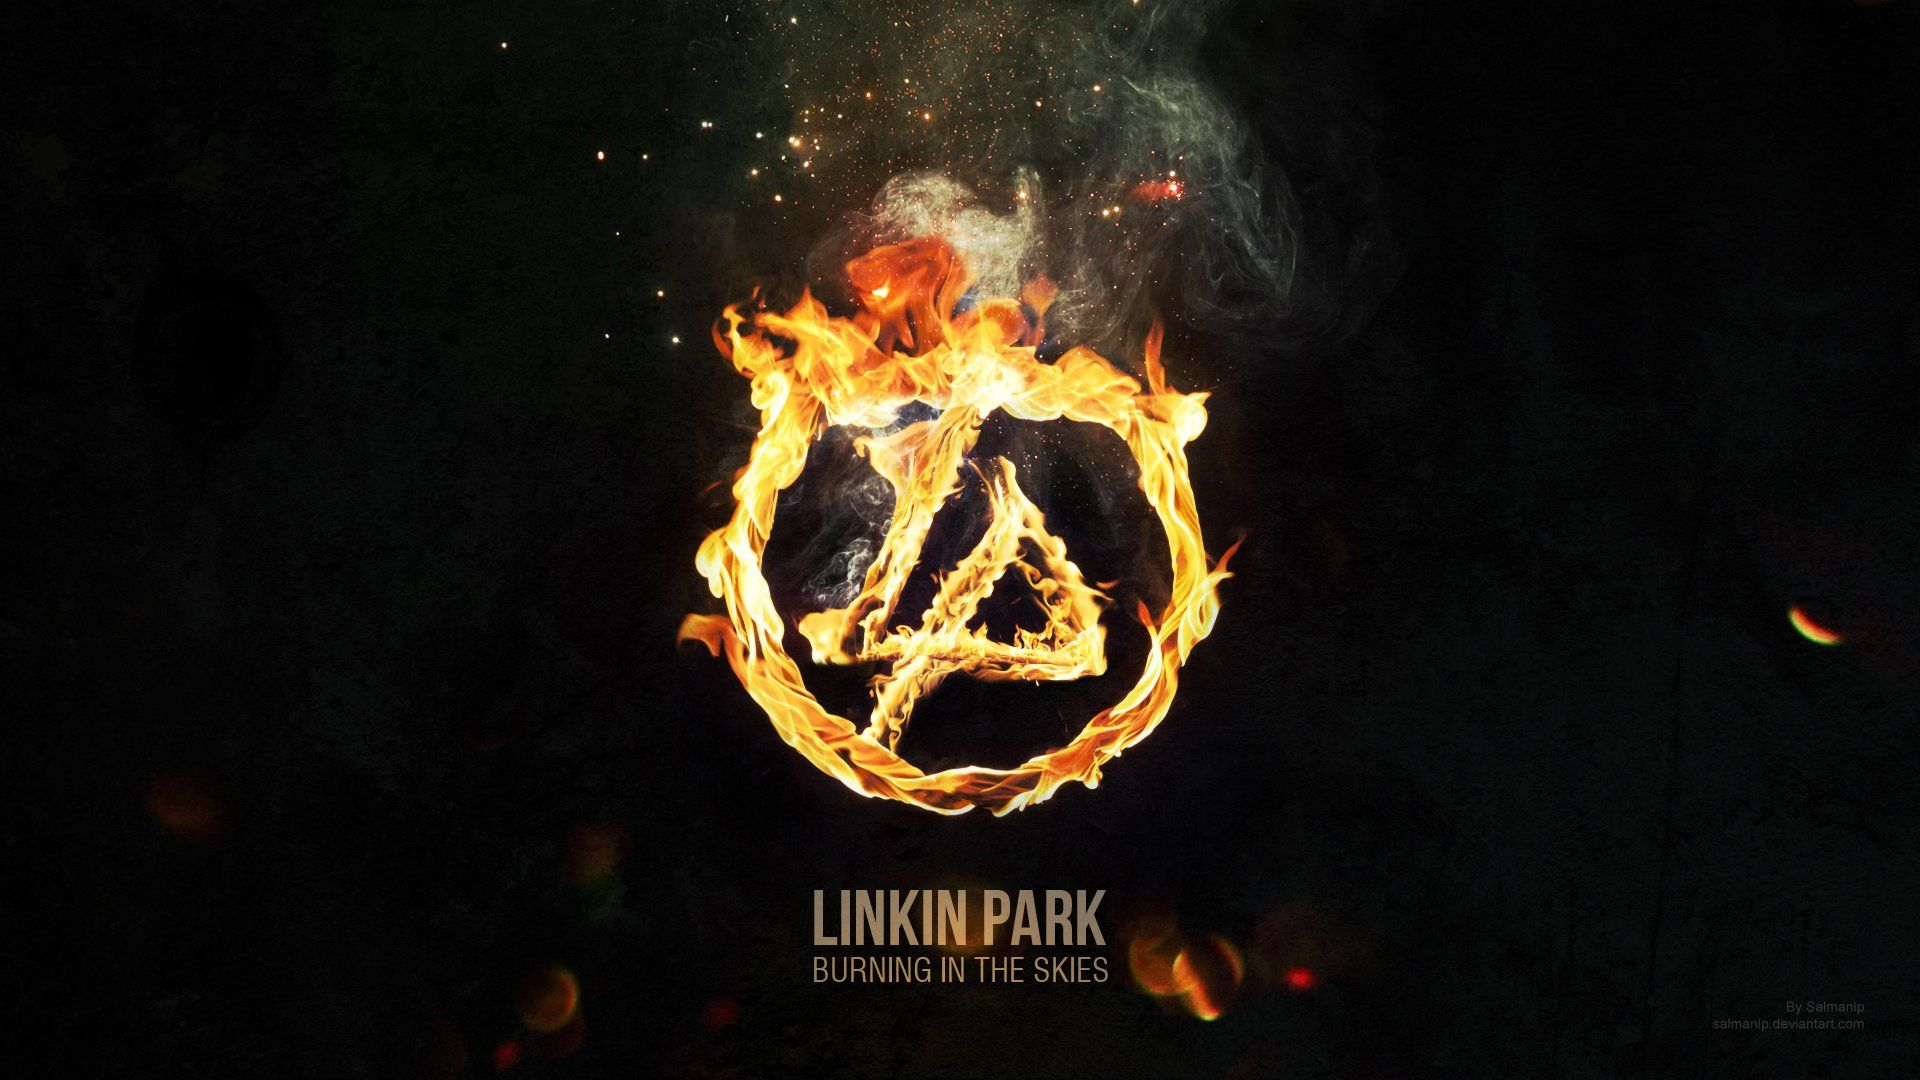 Linkin Park Hd Wallpapers Backgrounds Wallpaper Linkin